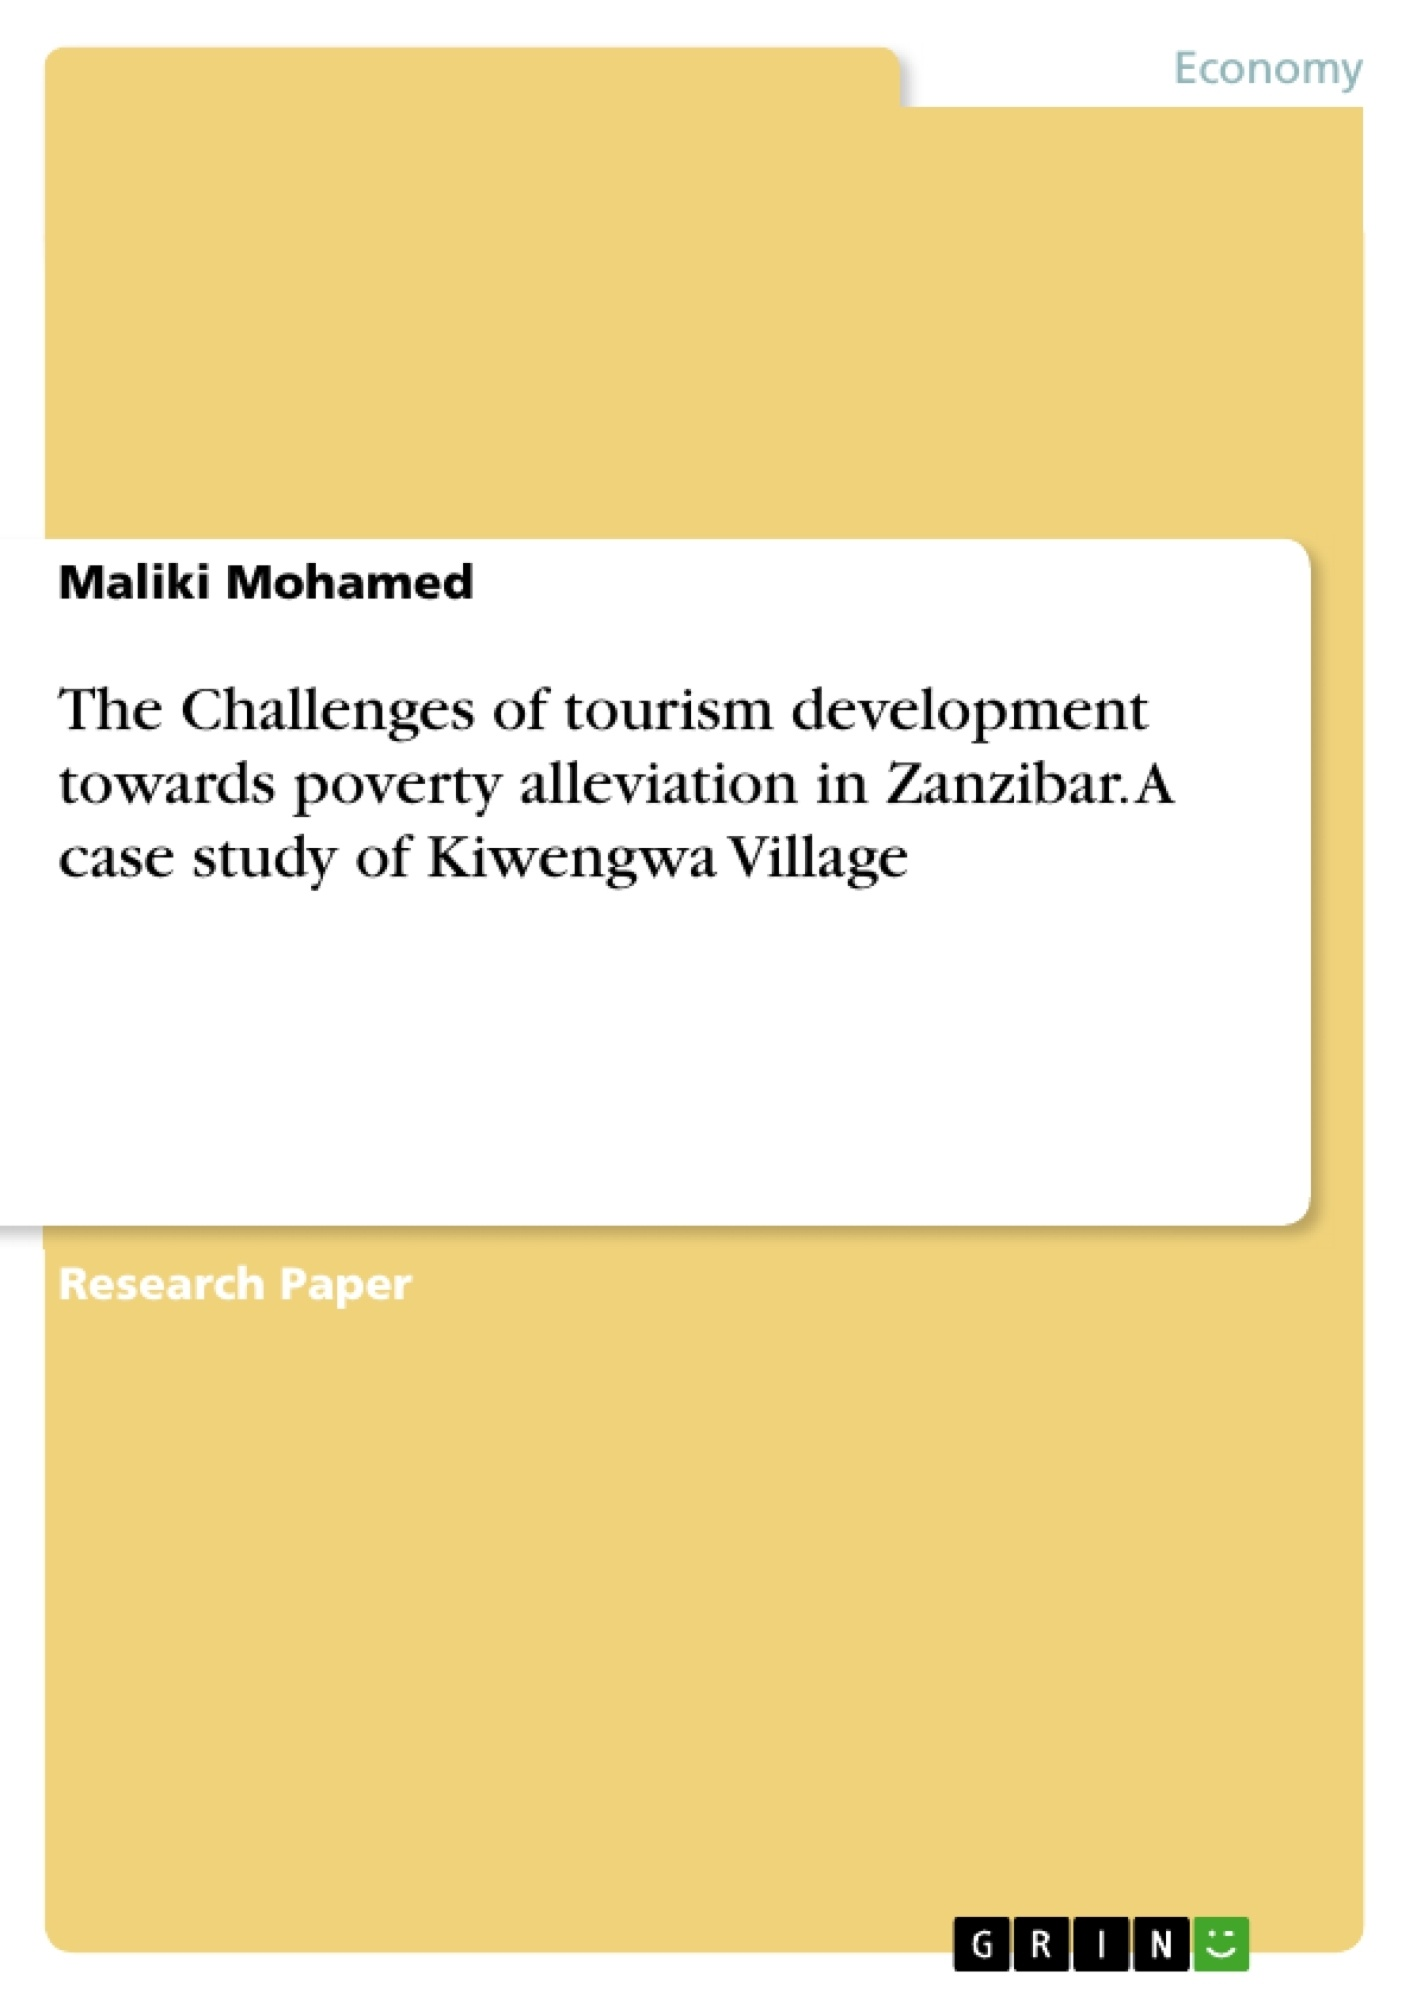 poverty definition essay topic